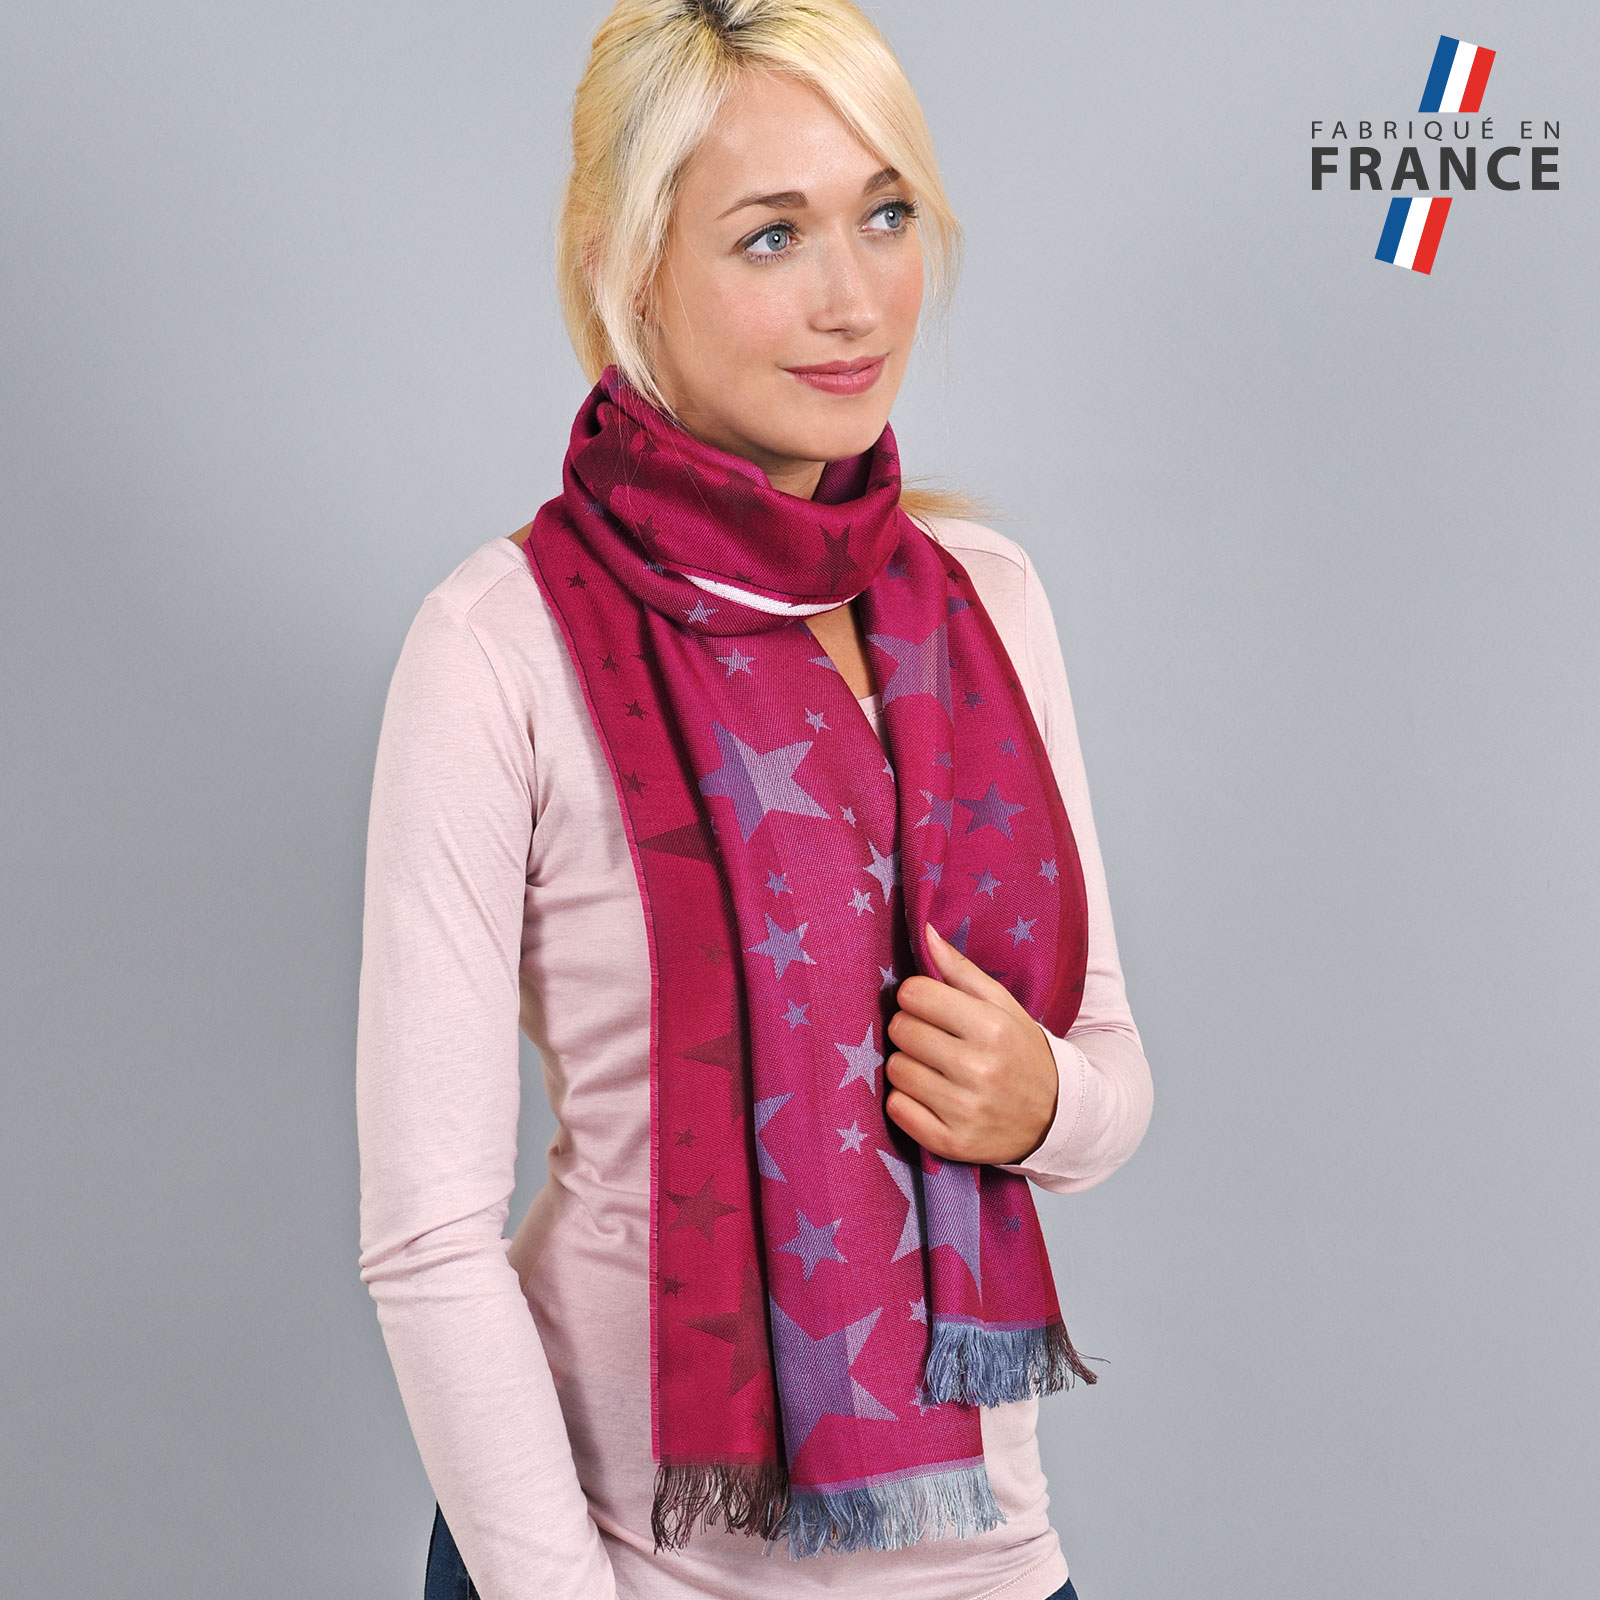 AT-03661-VF16-LB_FR-echarpe-legere-etoiles-rose-fuchsia-fabrique-en-france